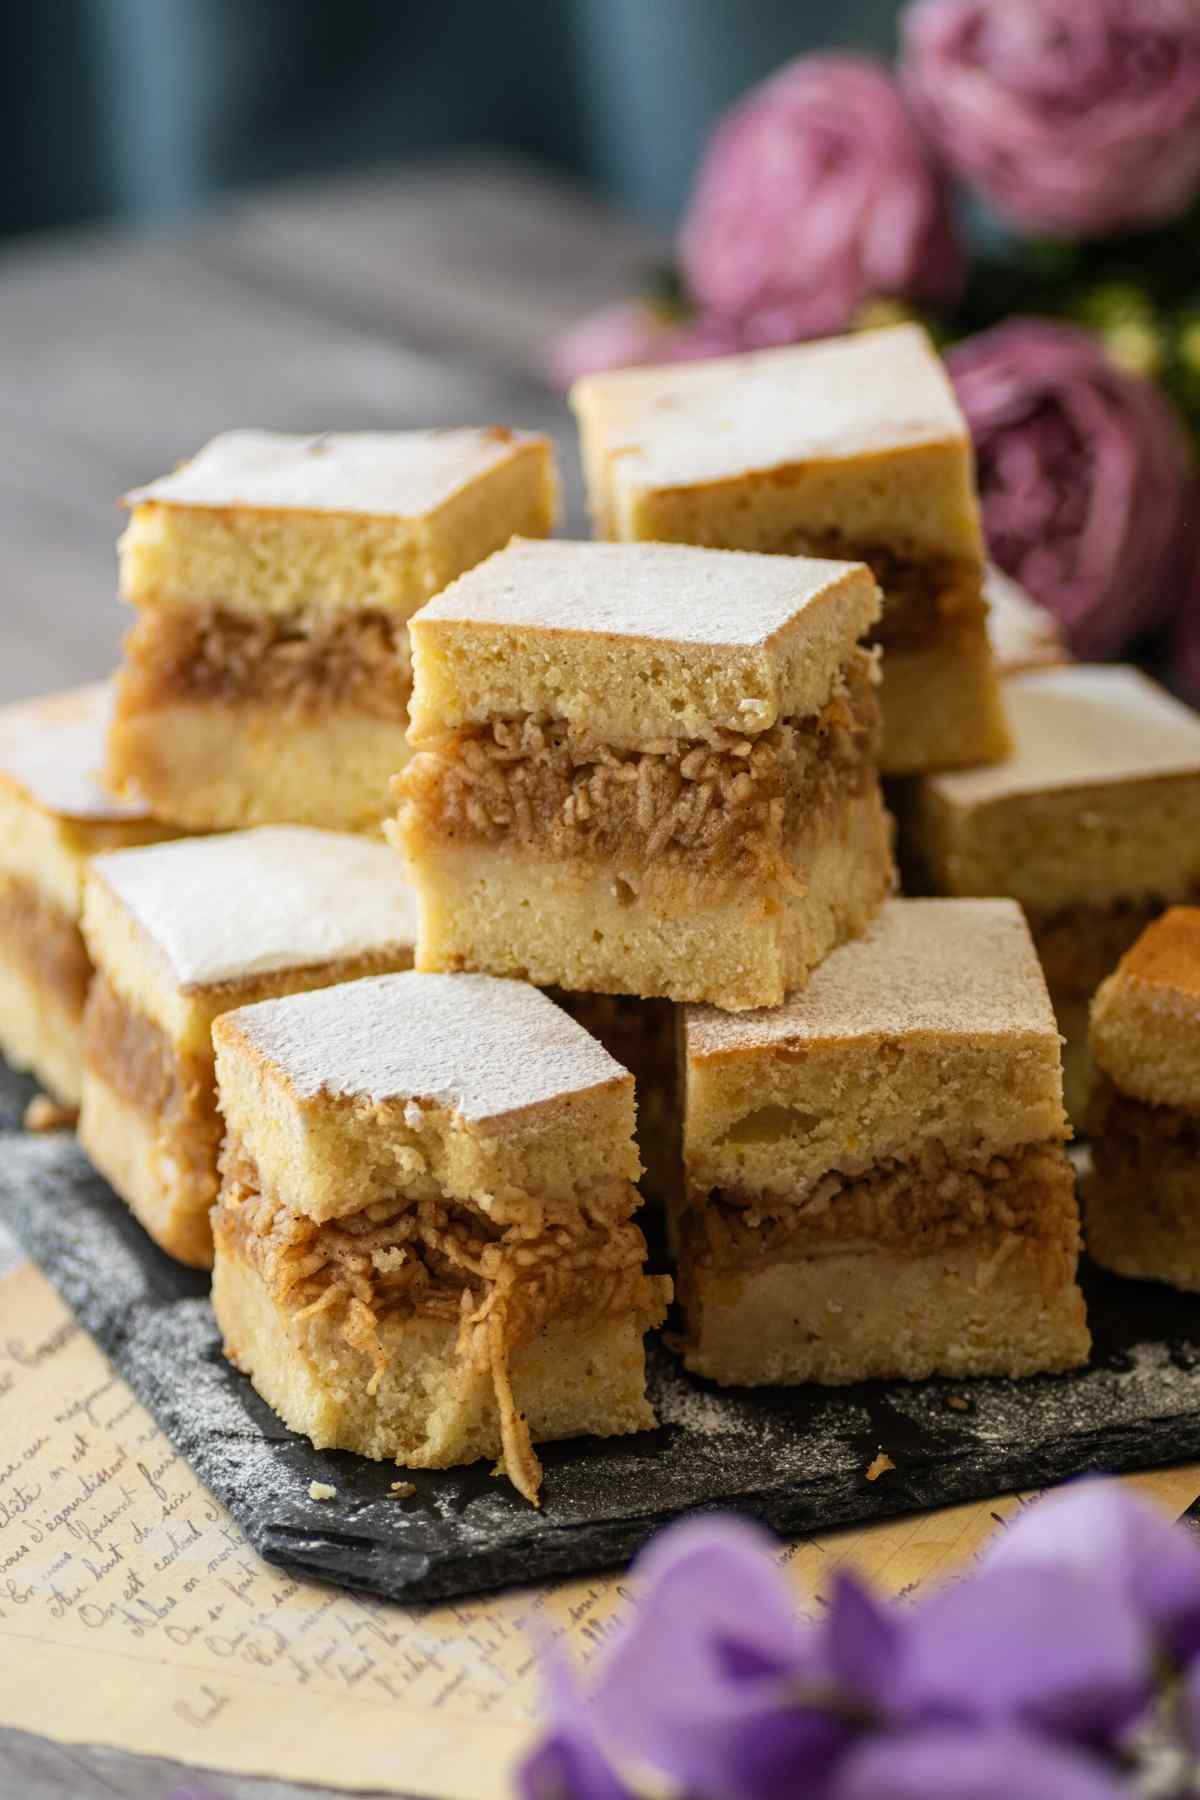 Slices of apple cake traybake stacked on top of each other